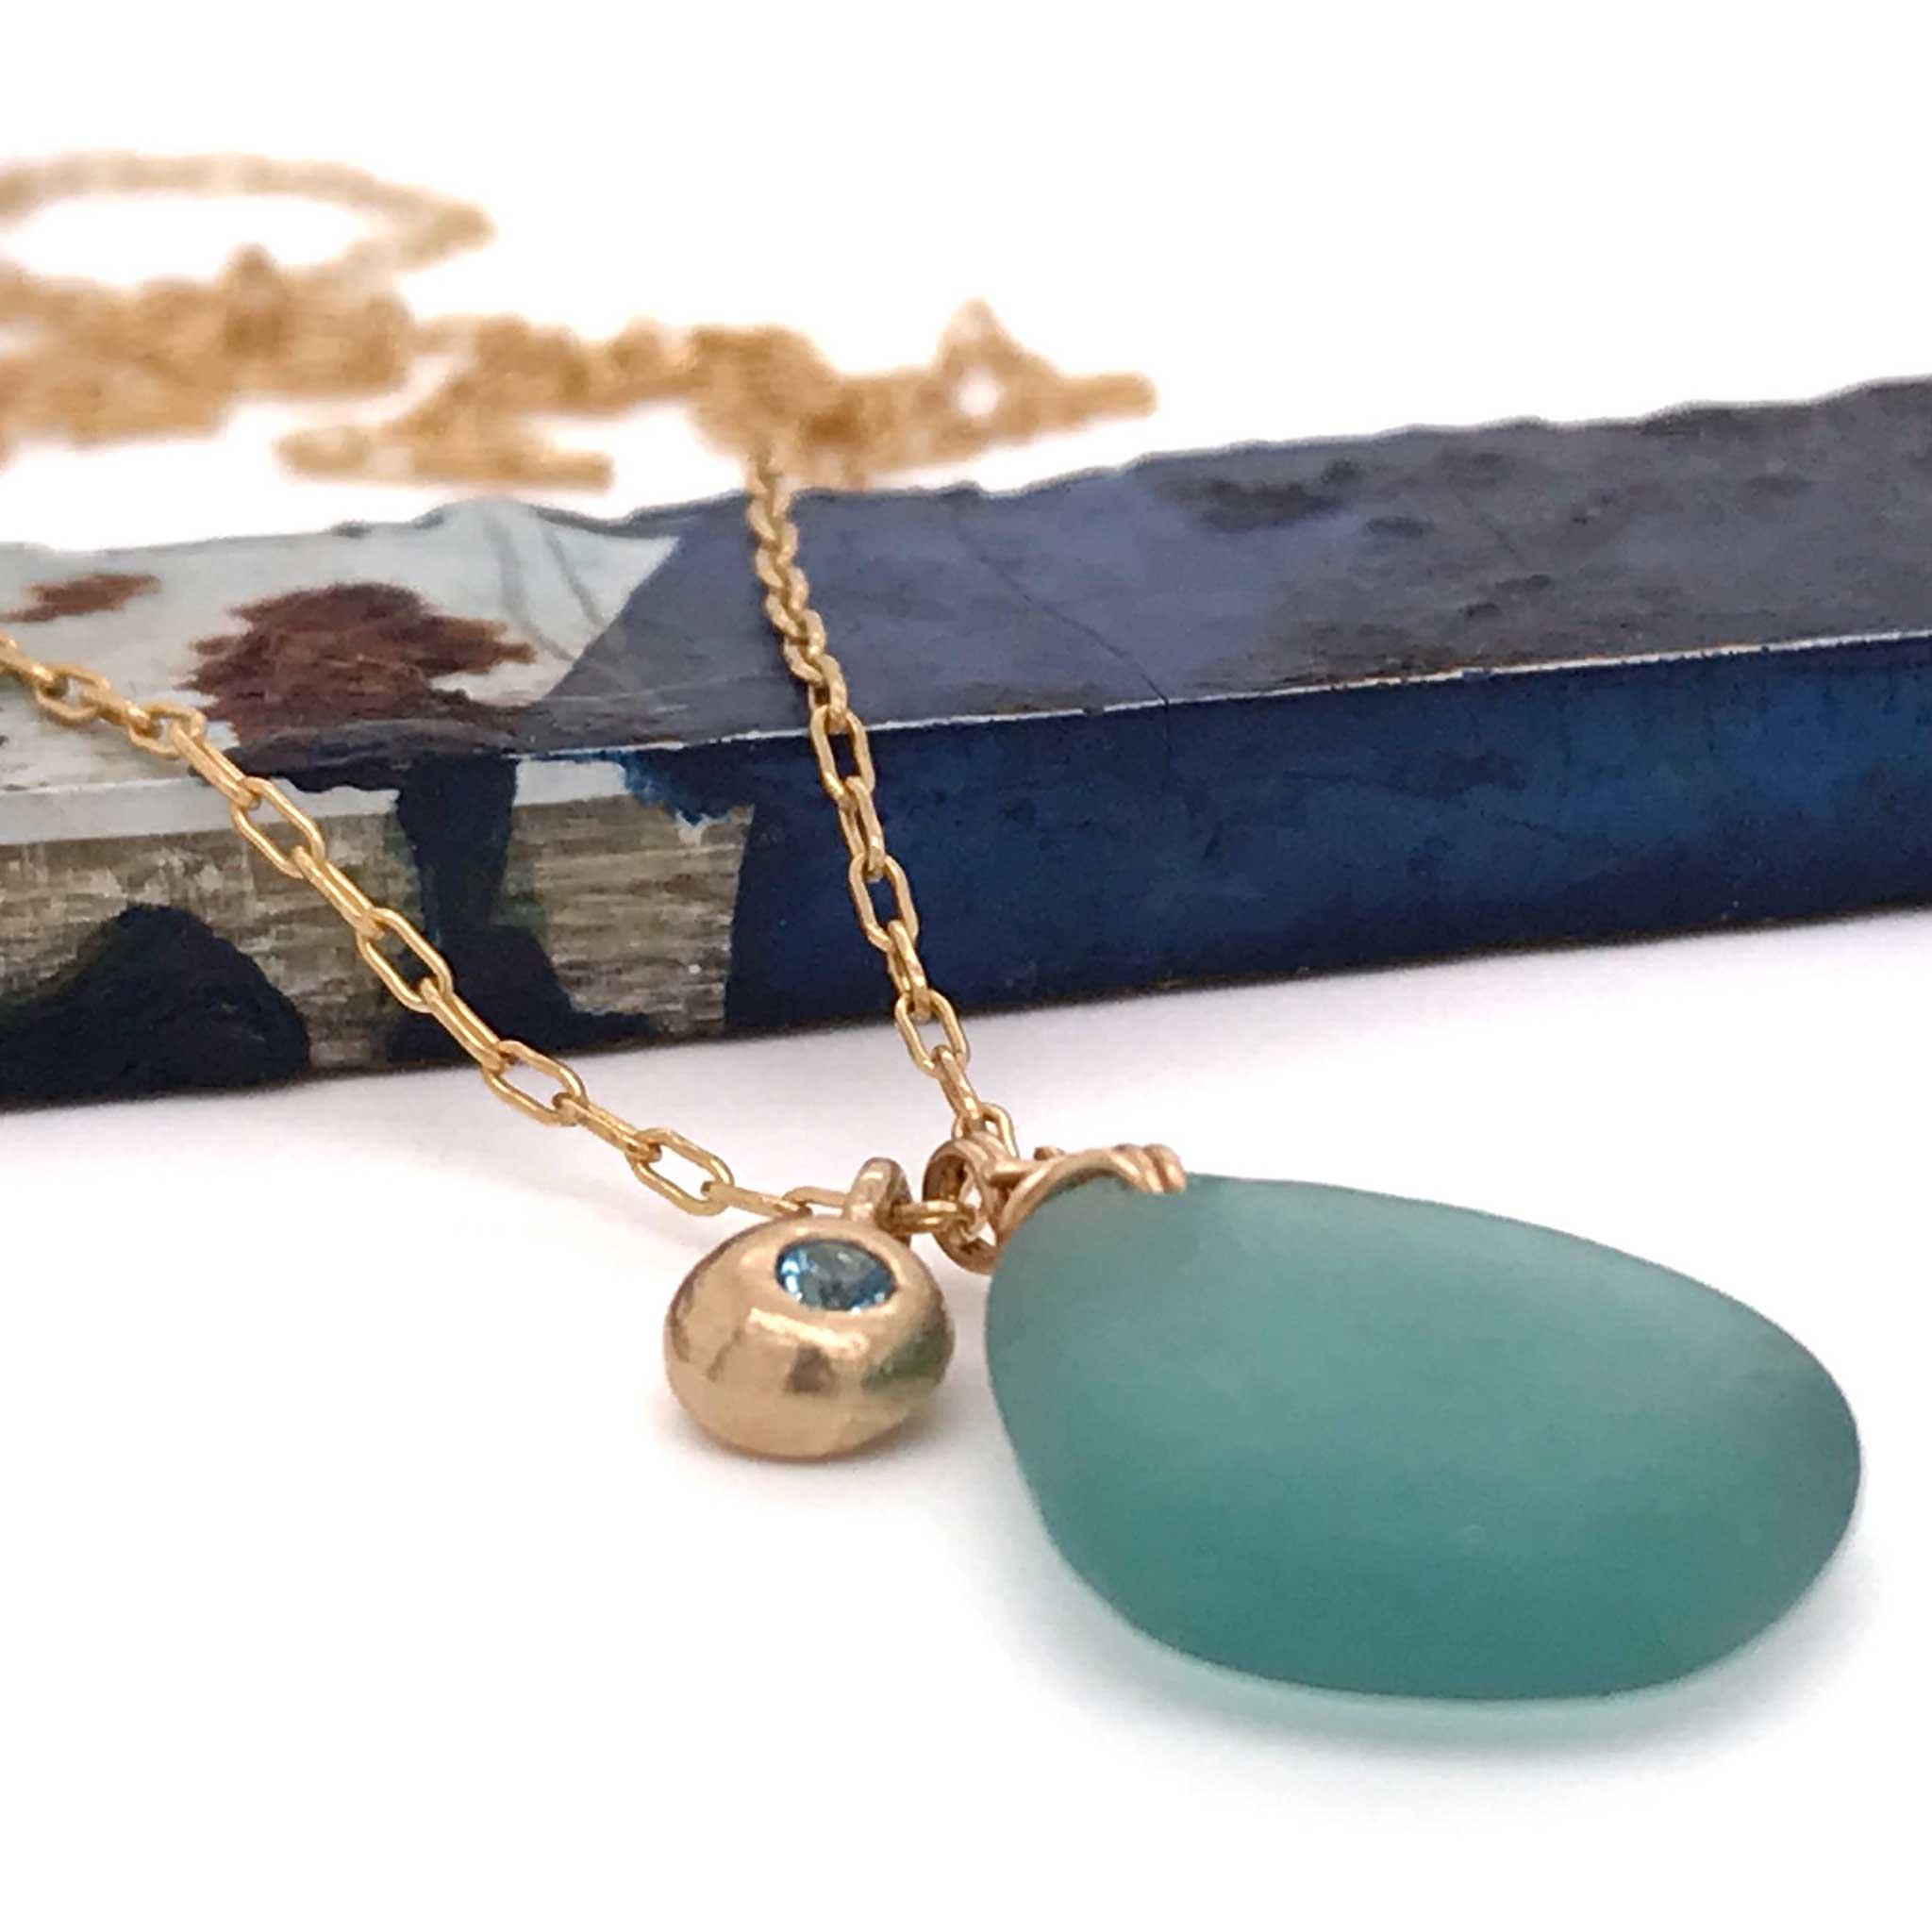 unique gift gold necklace with aqua sea glass and gold charm kriket broadhurst jewelry store near me